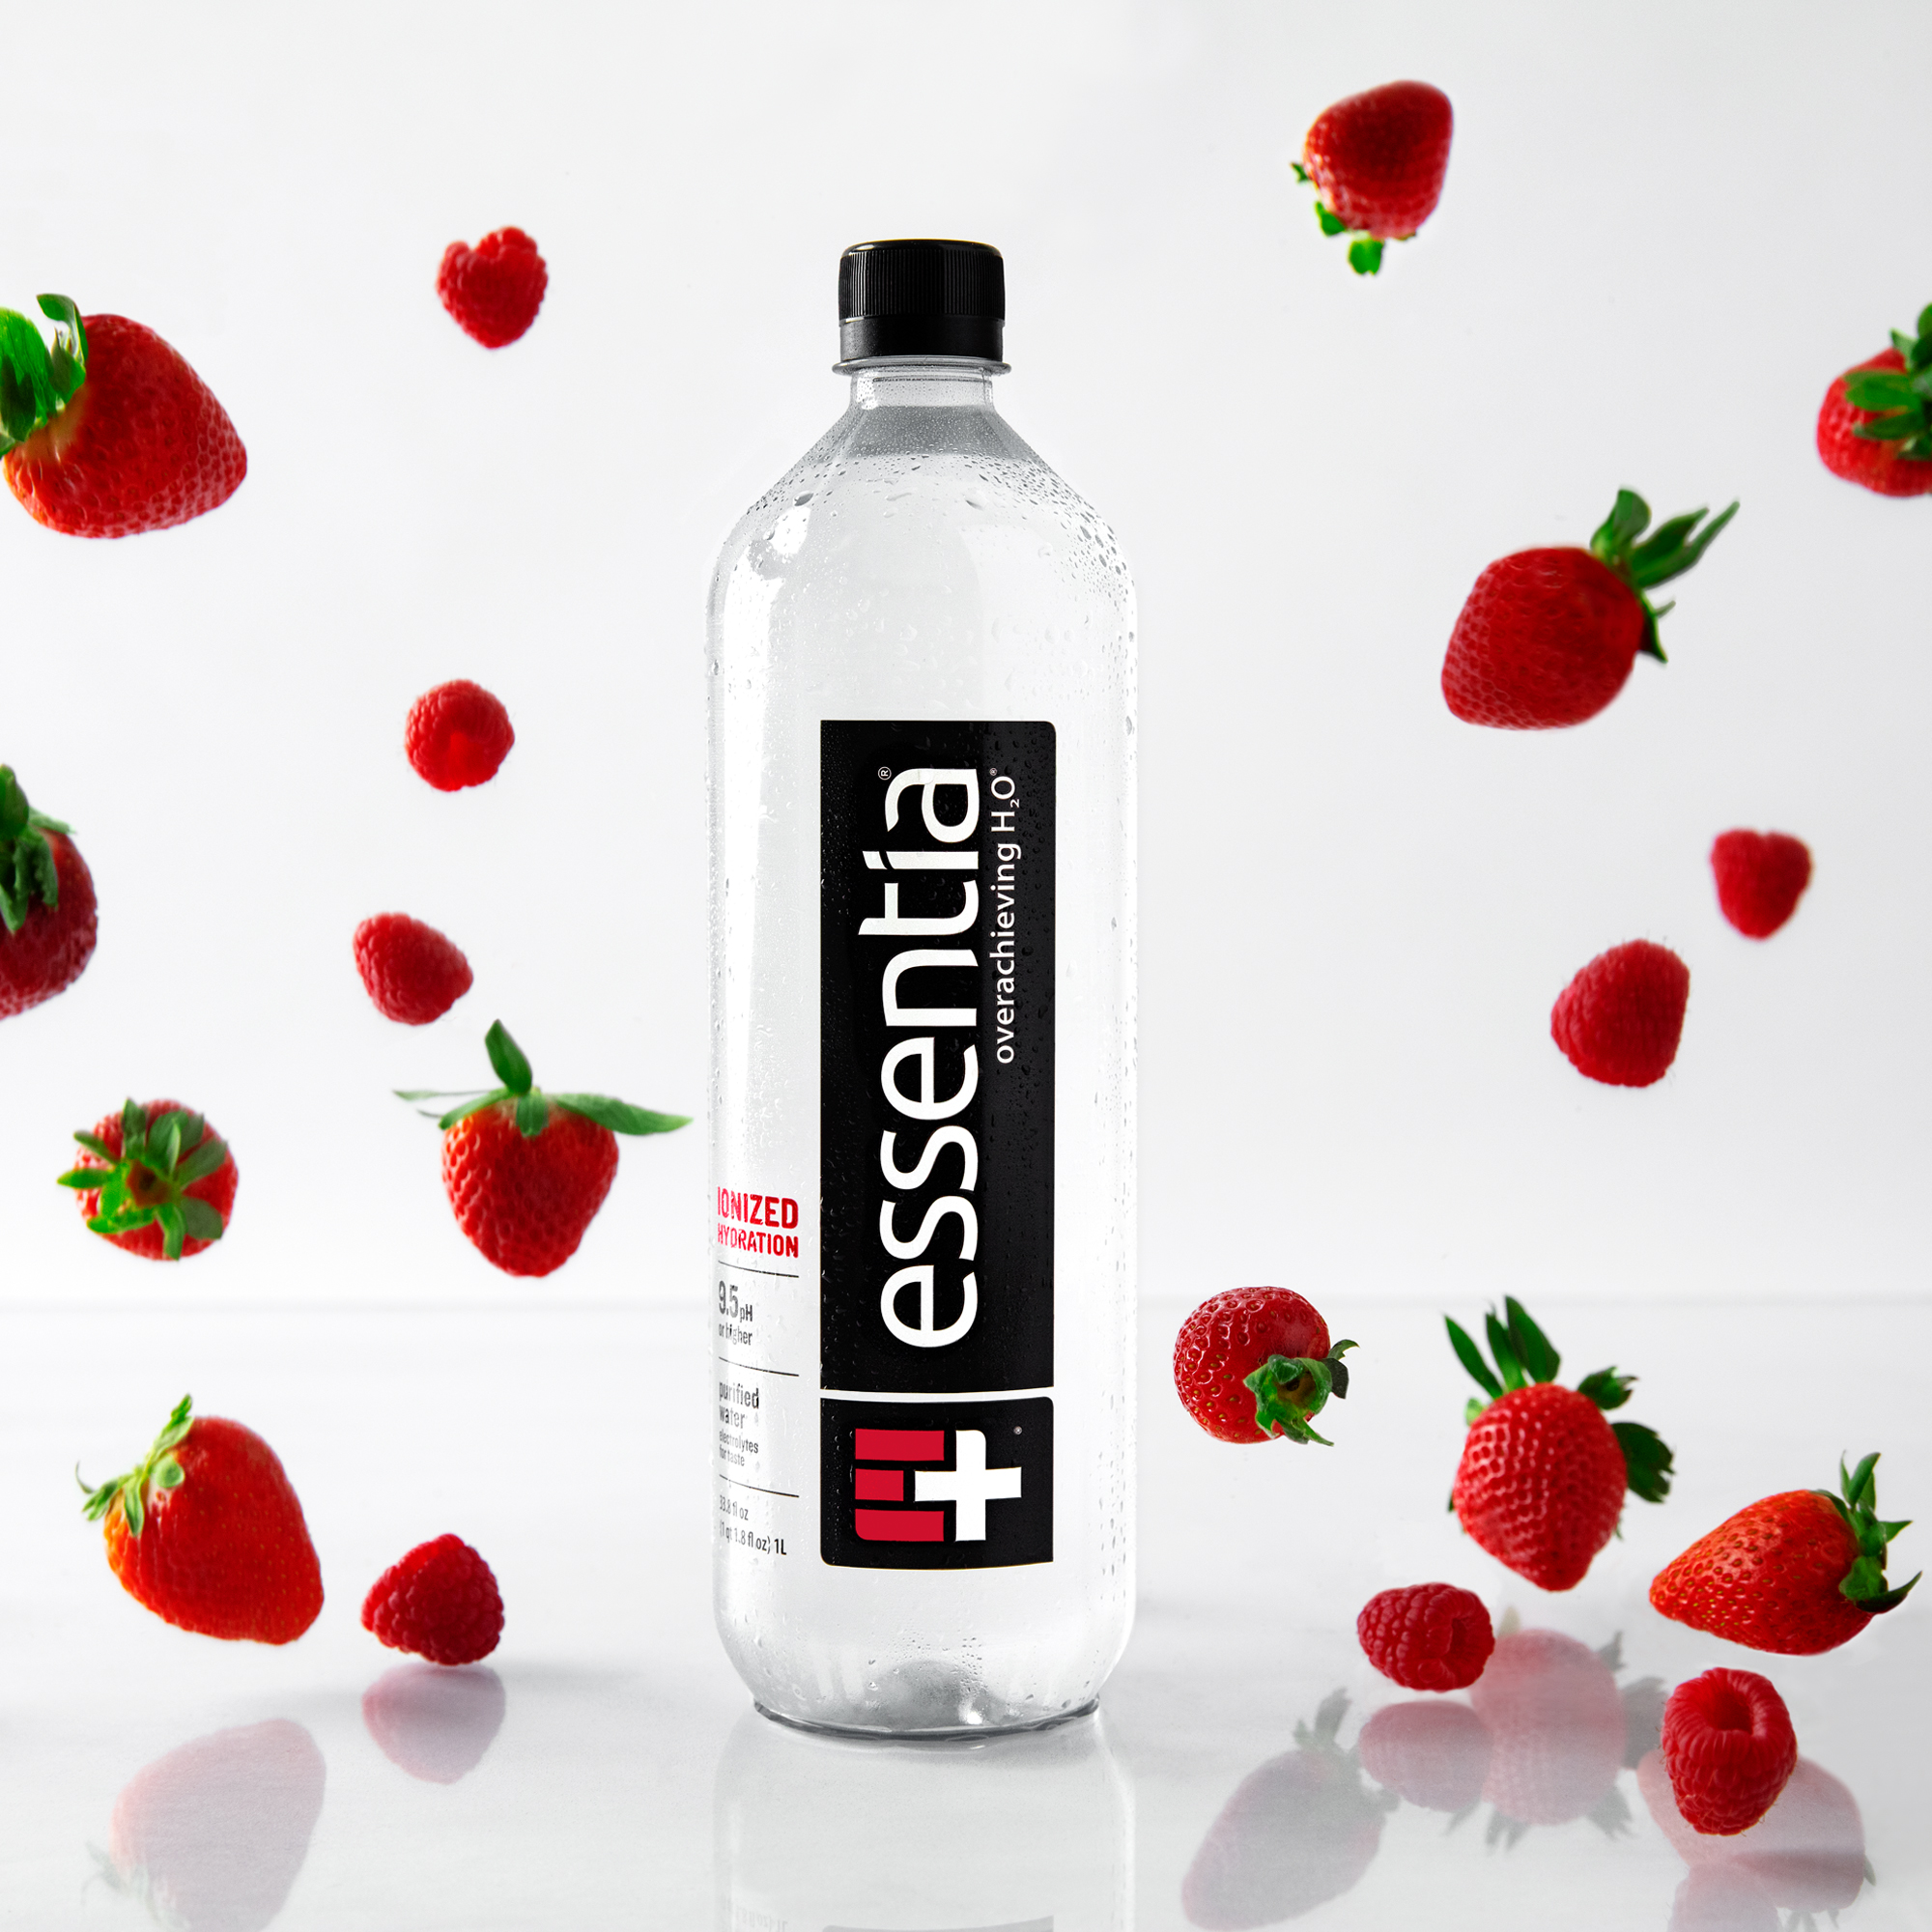 f4ebe8b49a Essentia Water; 1 Liter Bottle; Ionized Alkaline Bottled Water;  Electrolytes for Taste; Better Rehydration*; pH 9.5 or Higher; Pure  Drinking Water; ...